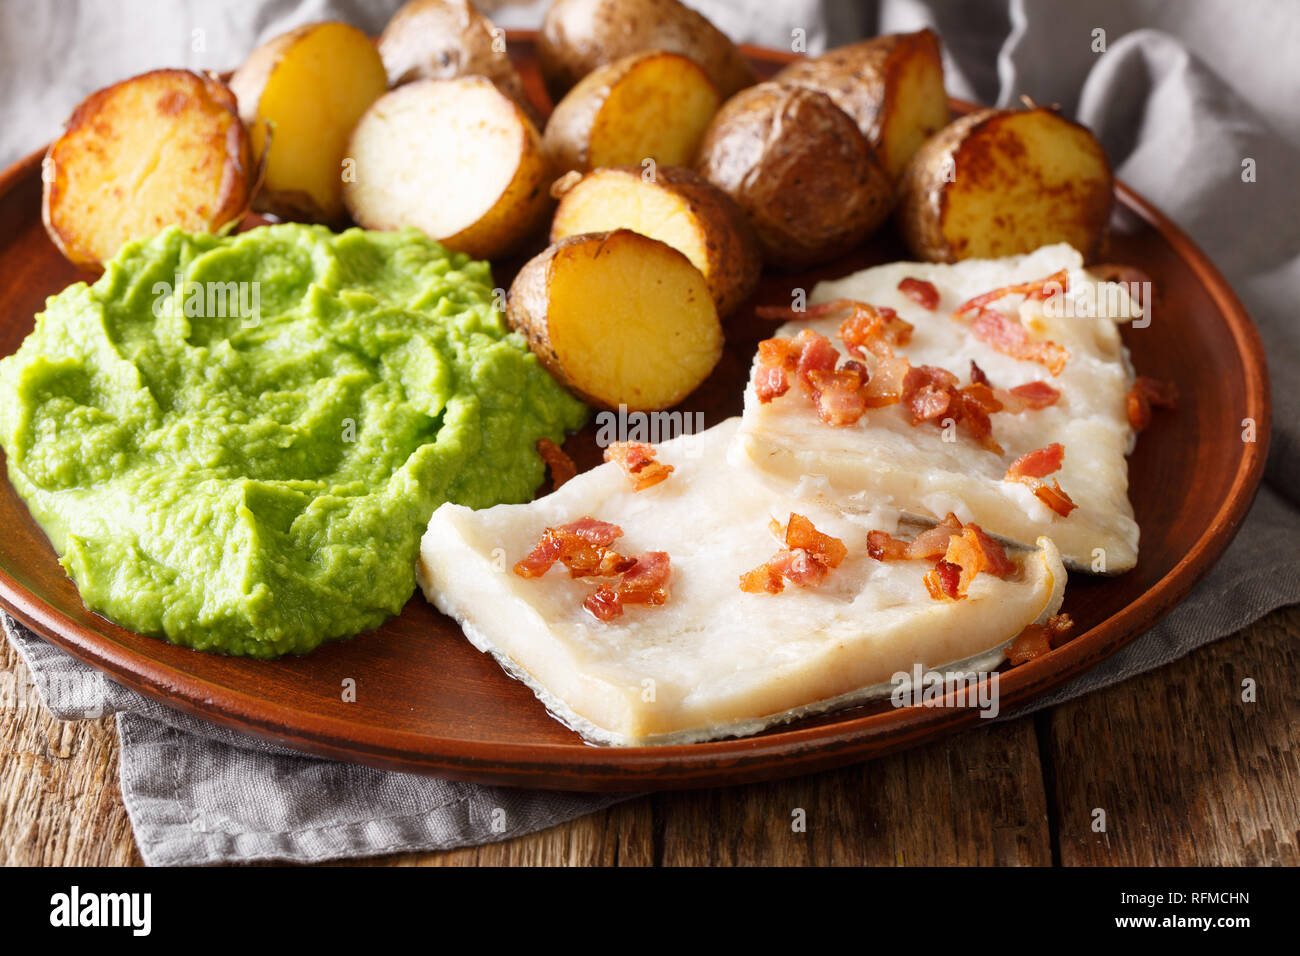 Cod Lutefisk with pea puree, baked potatoes and bacon close-up on a plate on the table. horizontal - Stock Image